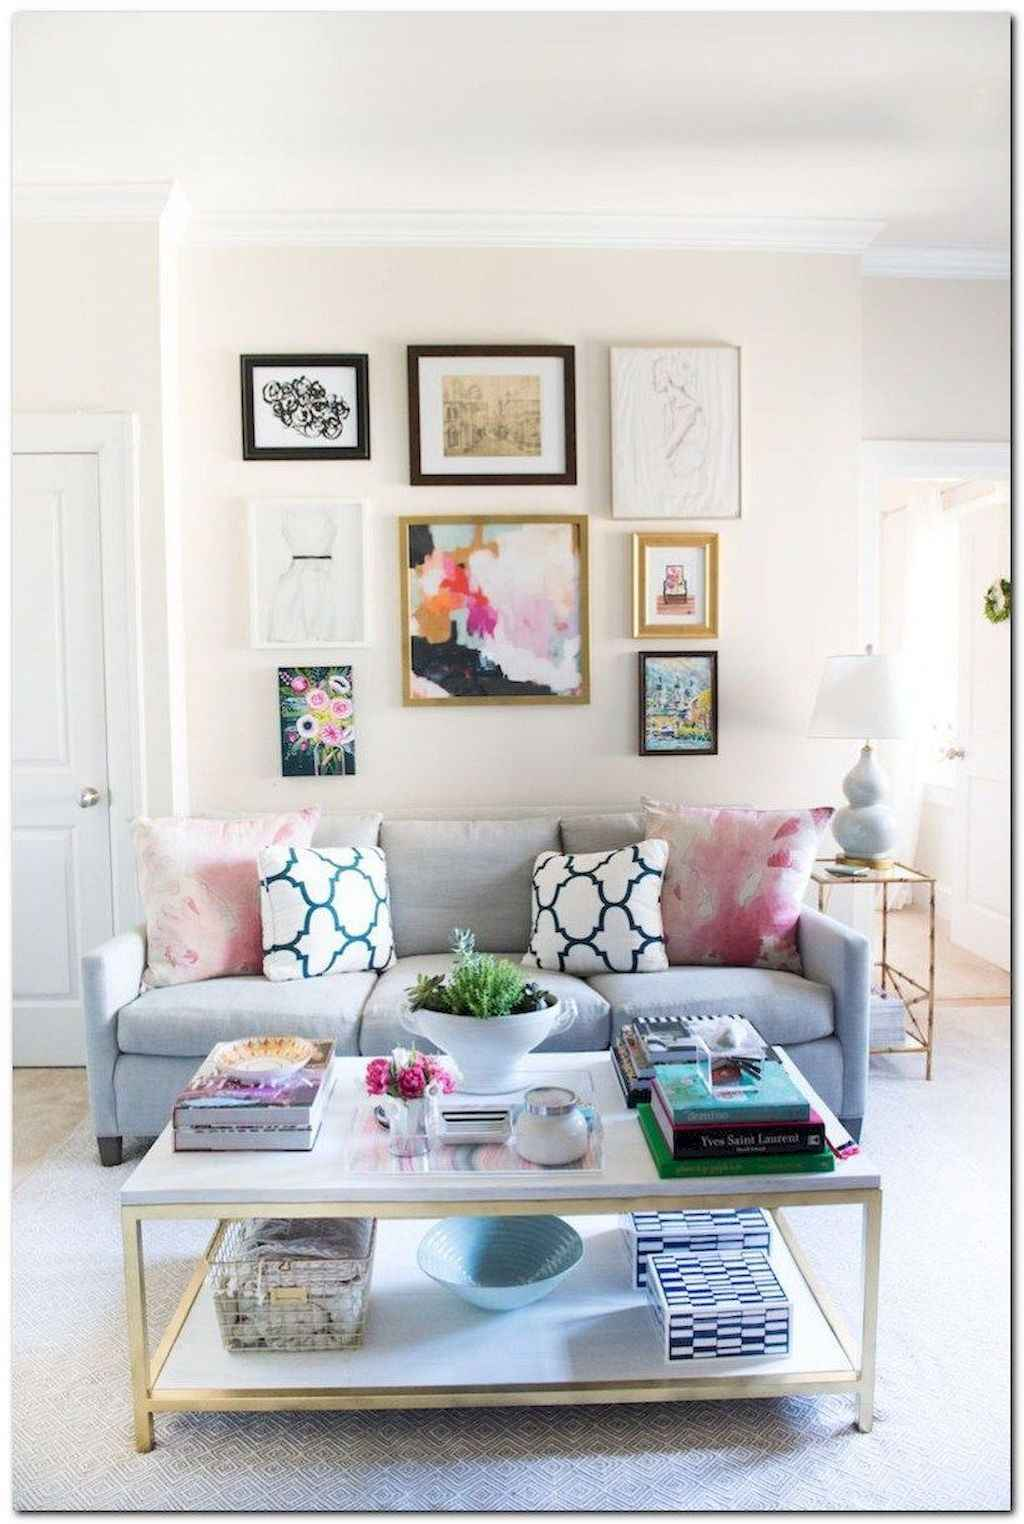 Clever college apartment decorating ideas on a budget (64)